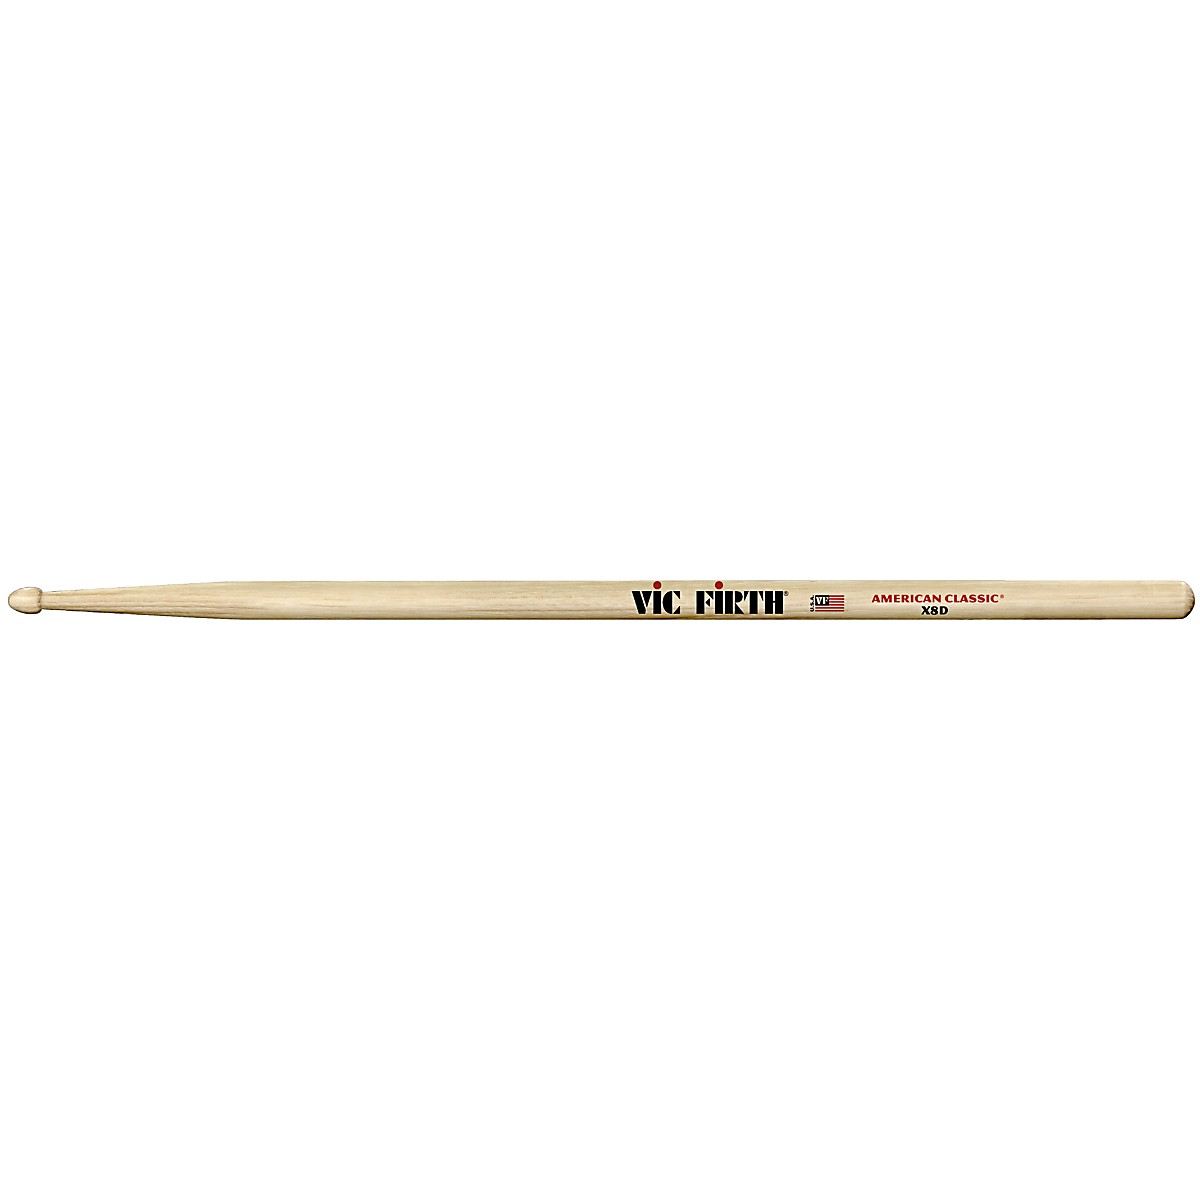 Vic Firth American Classic Extreme 8D Drum Sticks